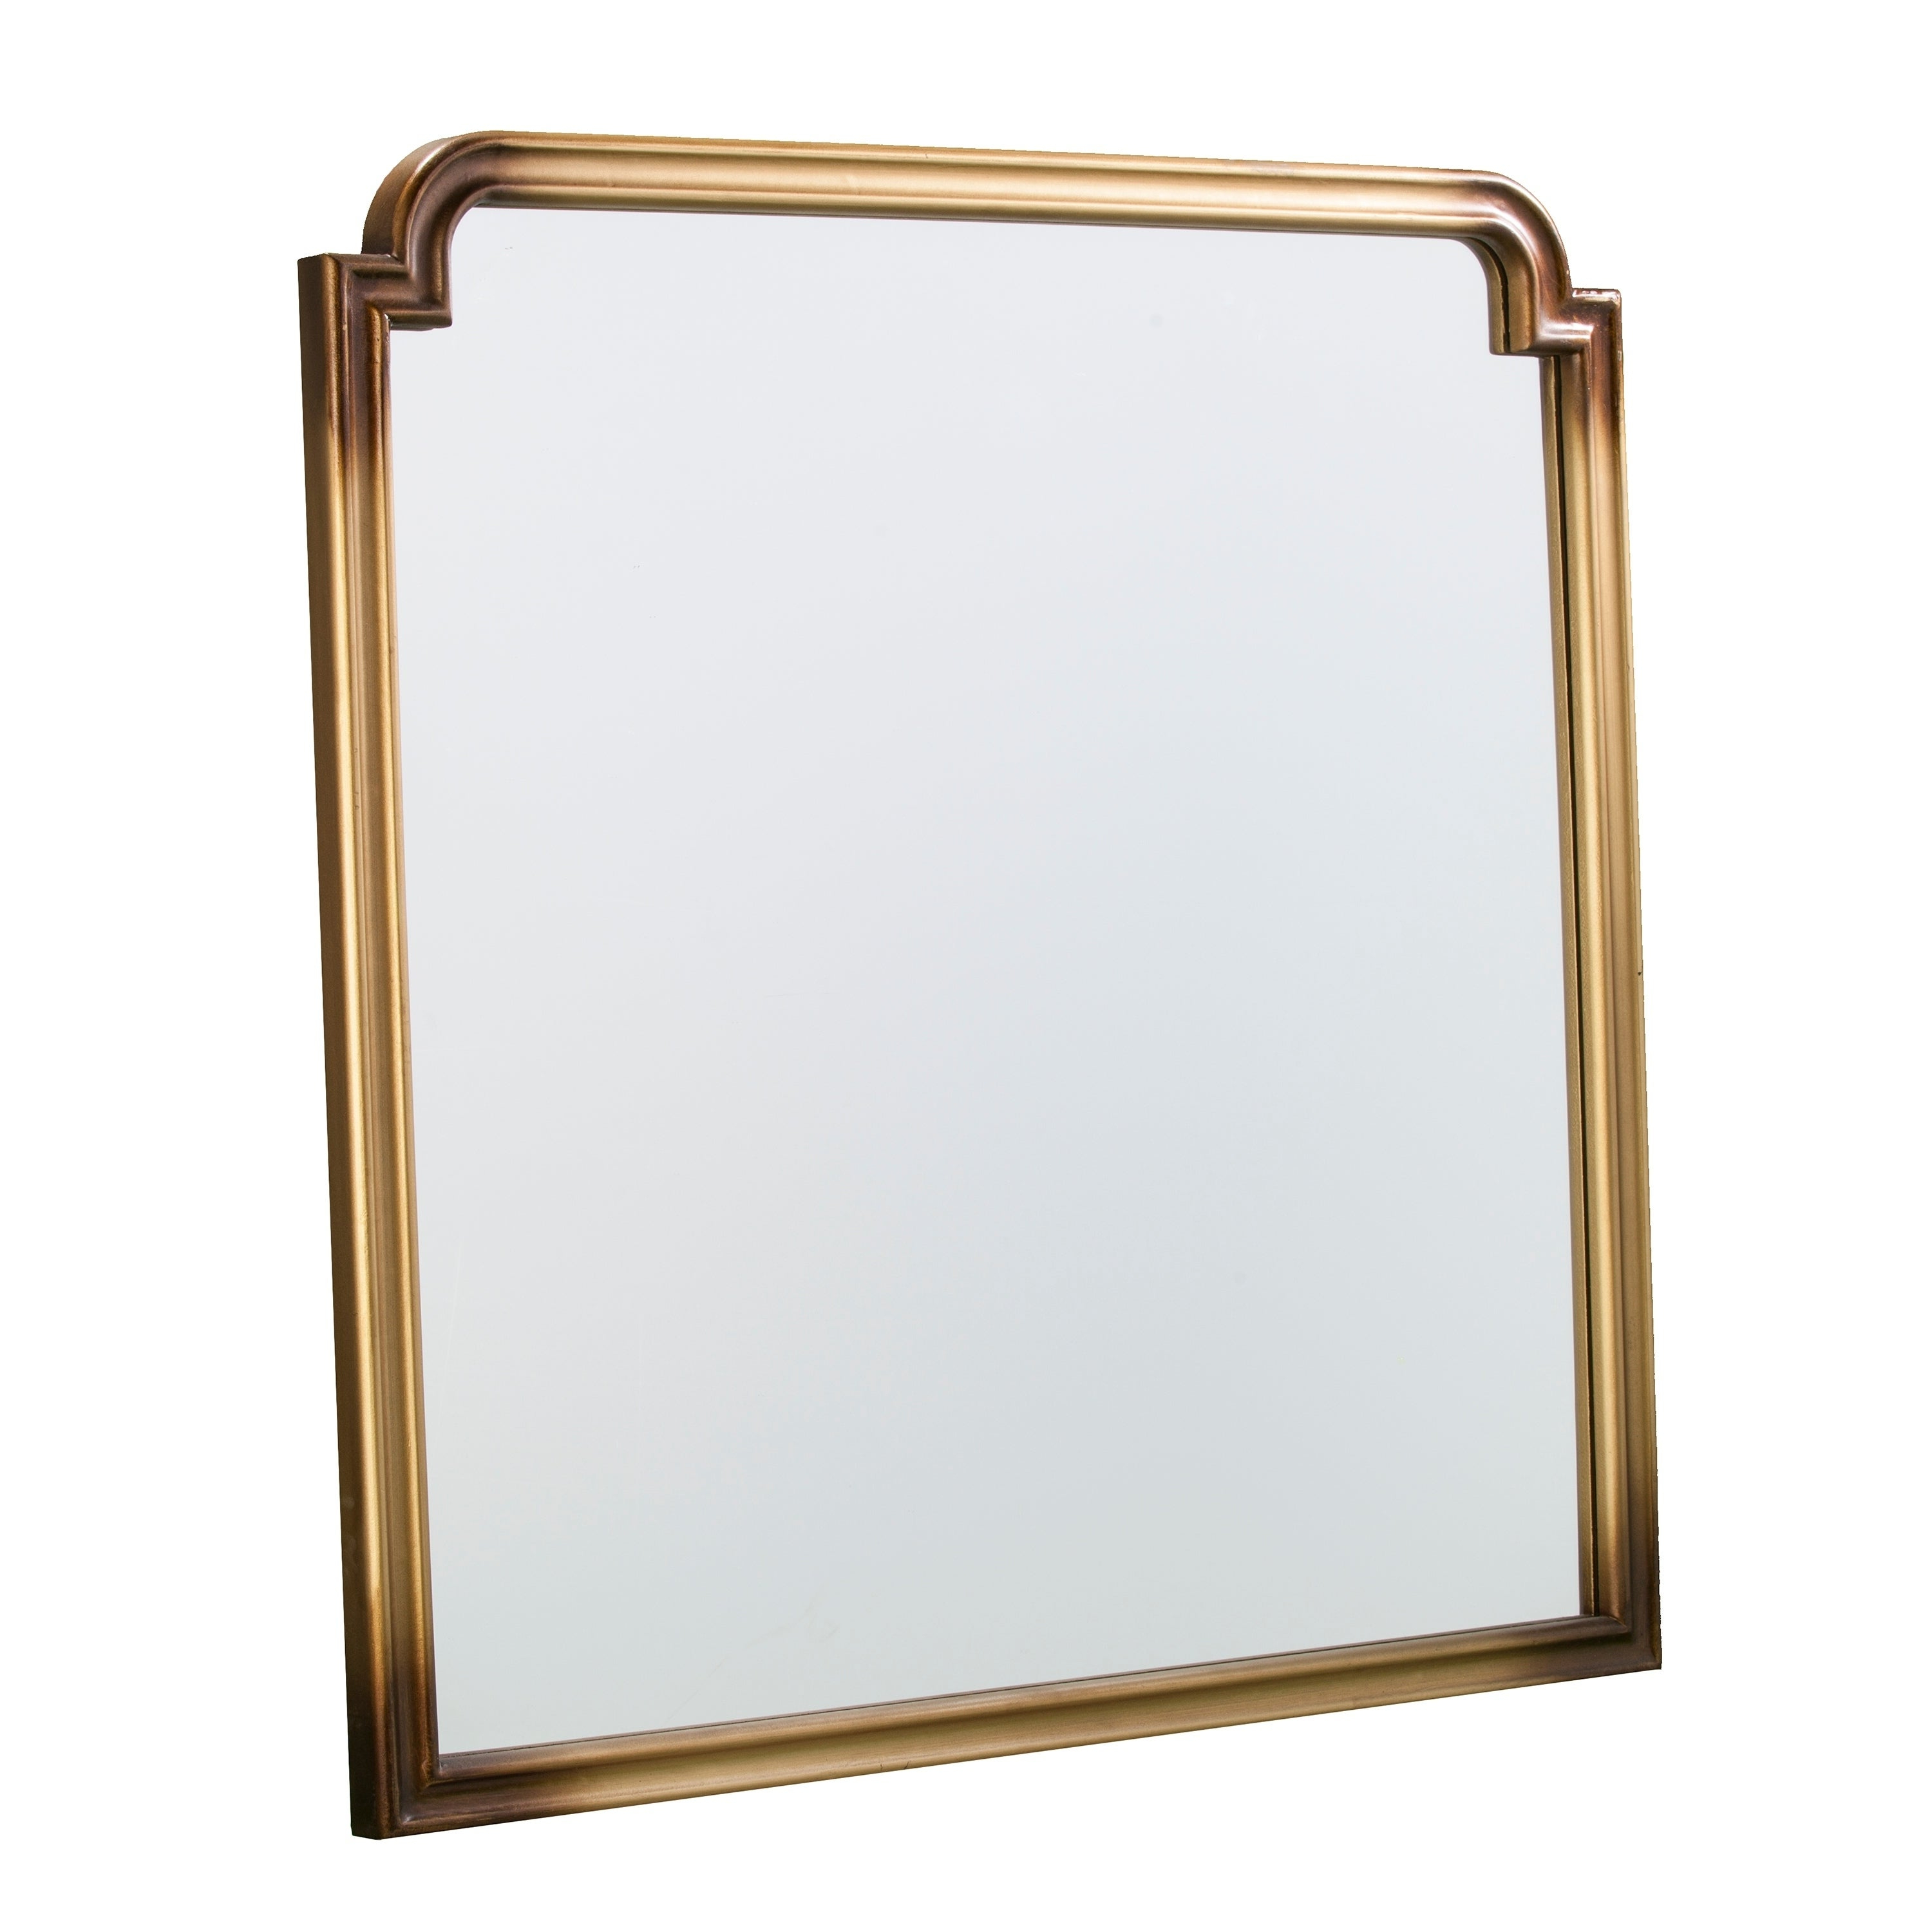 Silver Orchid Kilgour Decorative Wall Mirror With Regard To Well Known Art Deco Wall Mirrors (View 14 of 20)